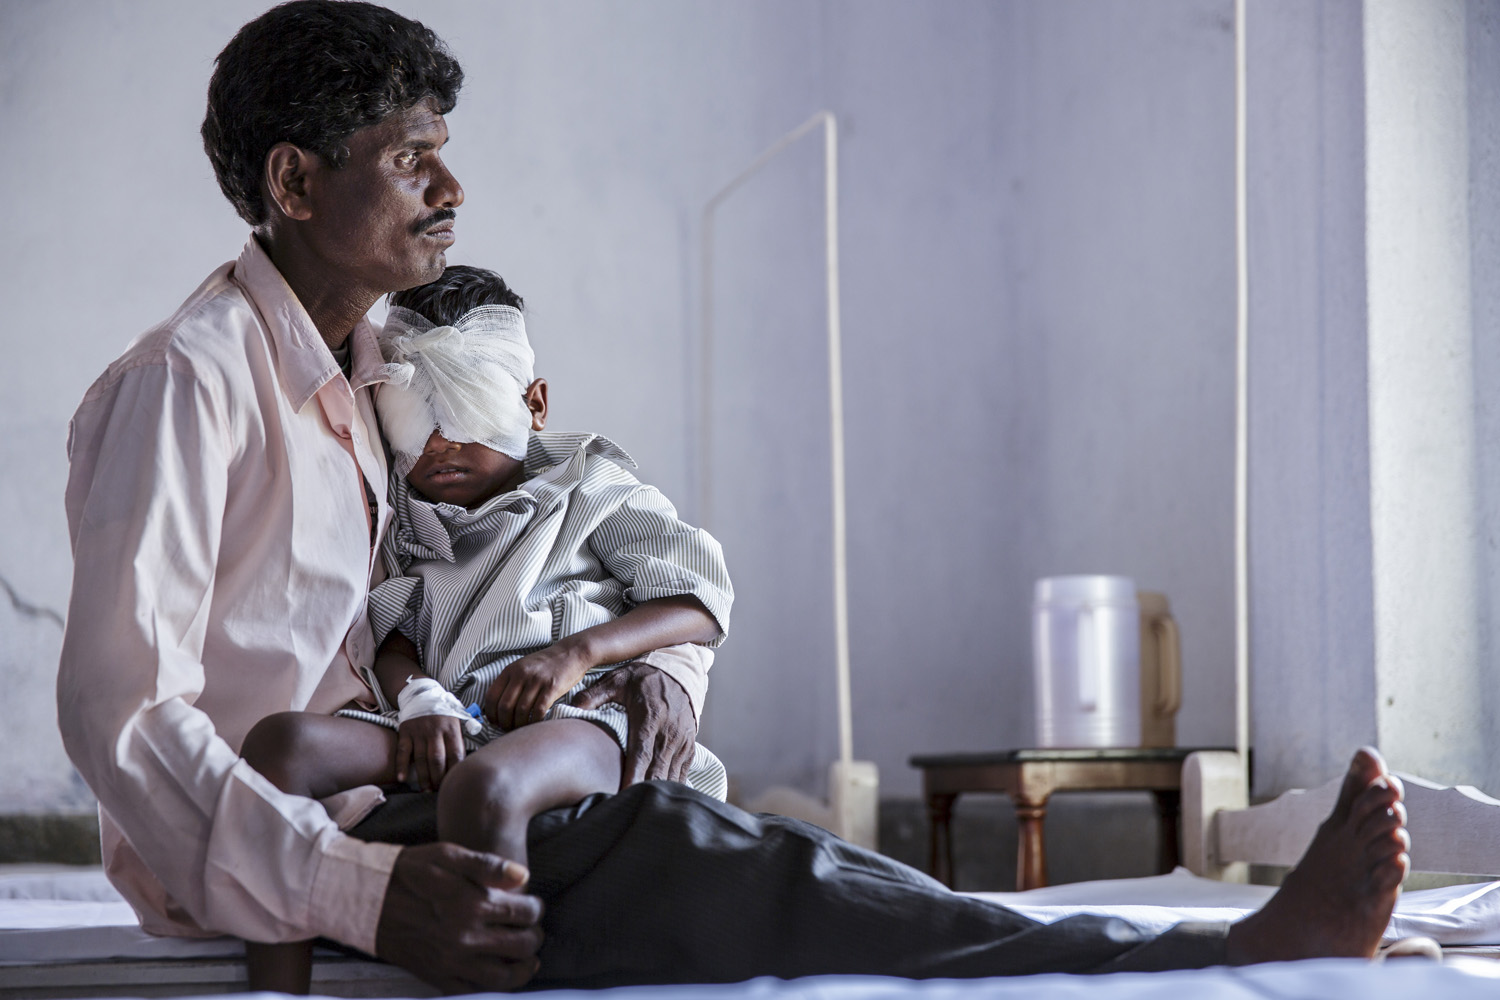 Anita Singh is held by her father as she recovers from eye surgery at Vivekananda Mission Hospital, Oct. 23, 2013 in West Bengal, India.